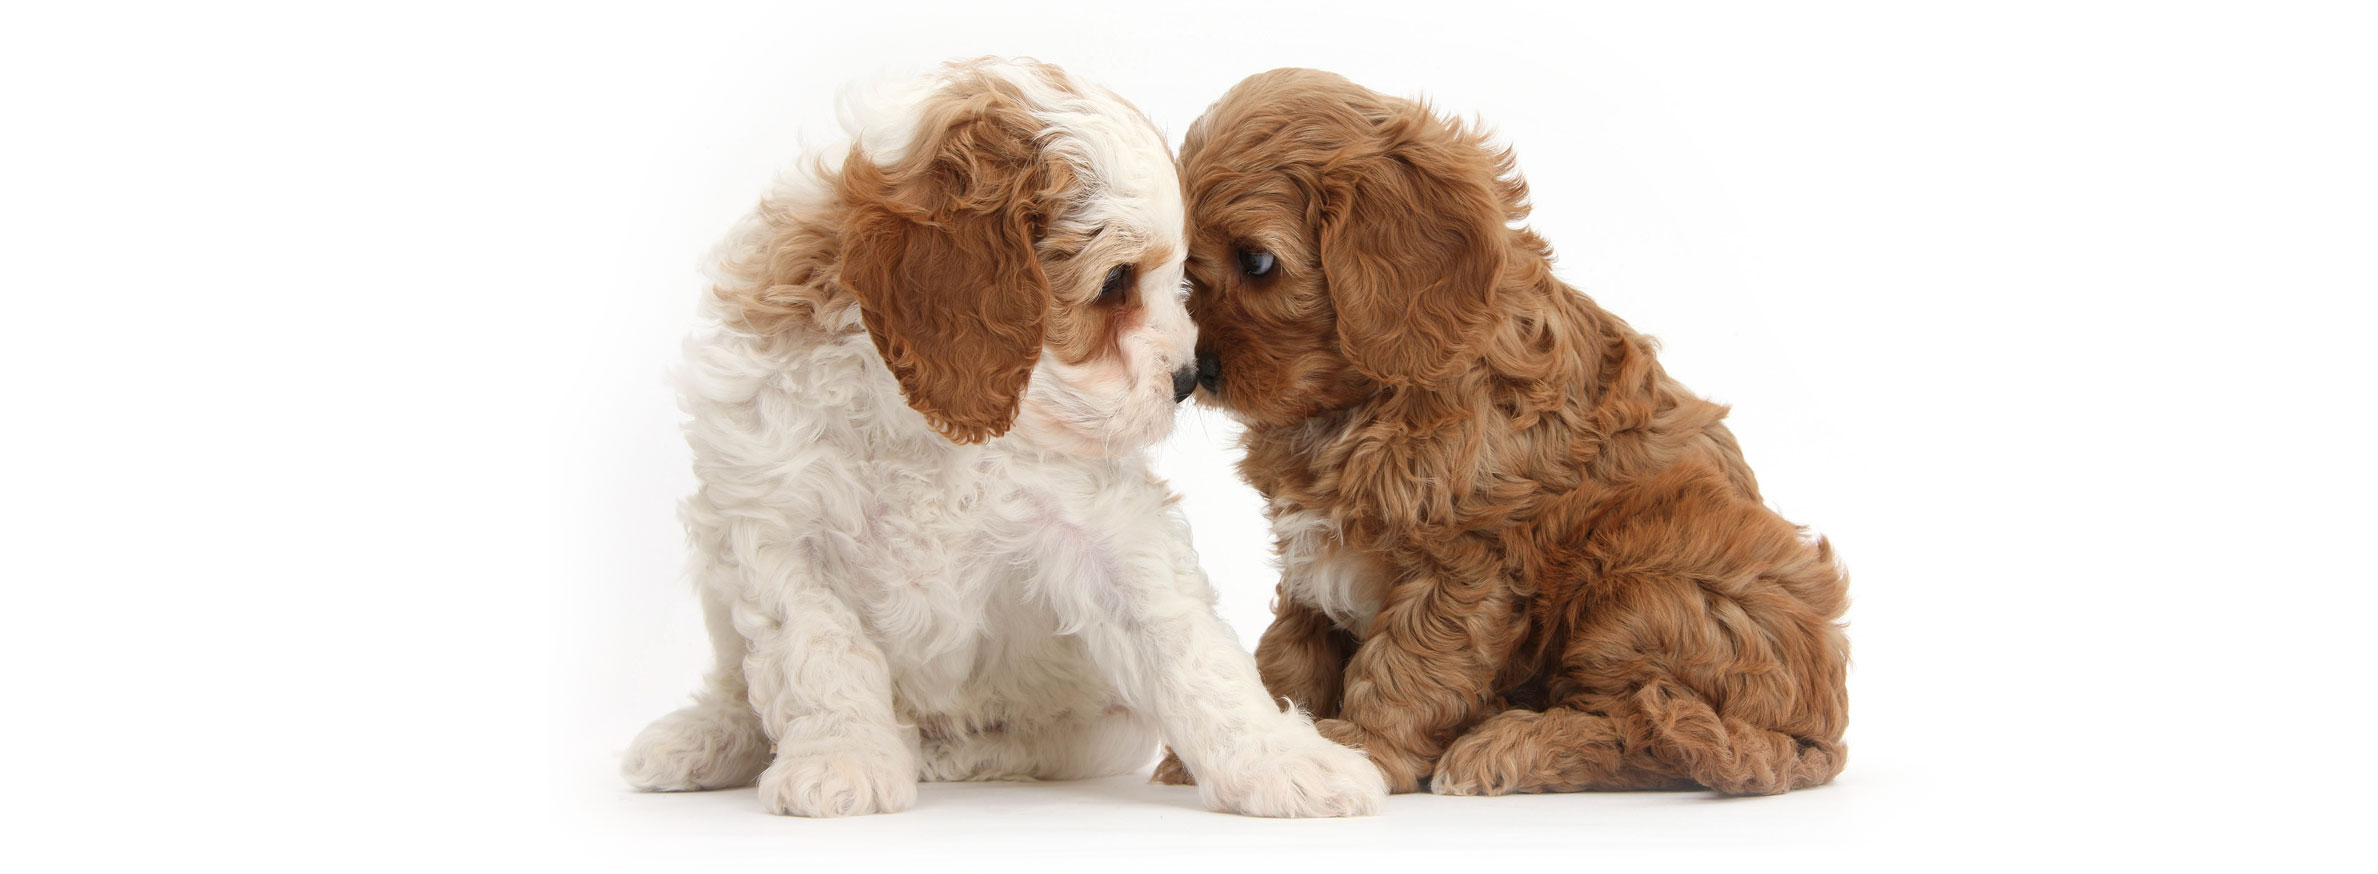 Minnesota labradoodle puppies